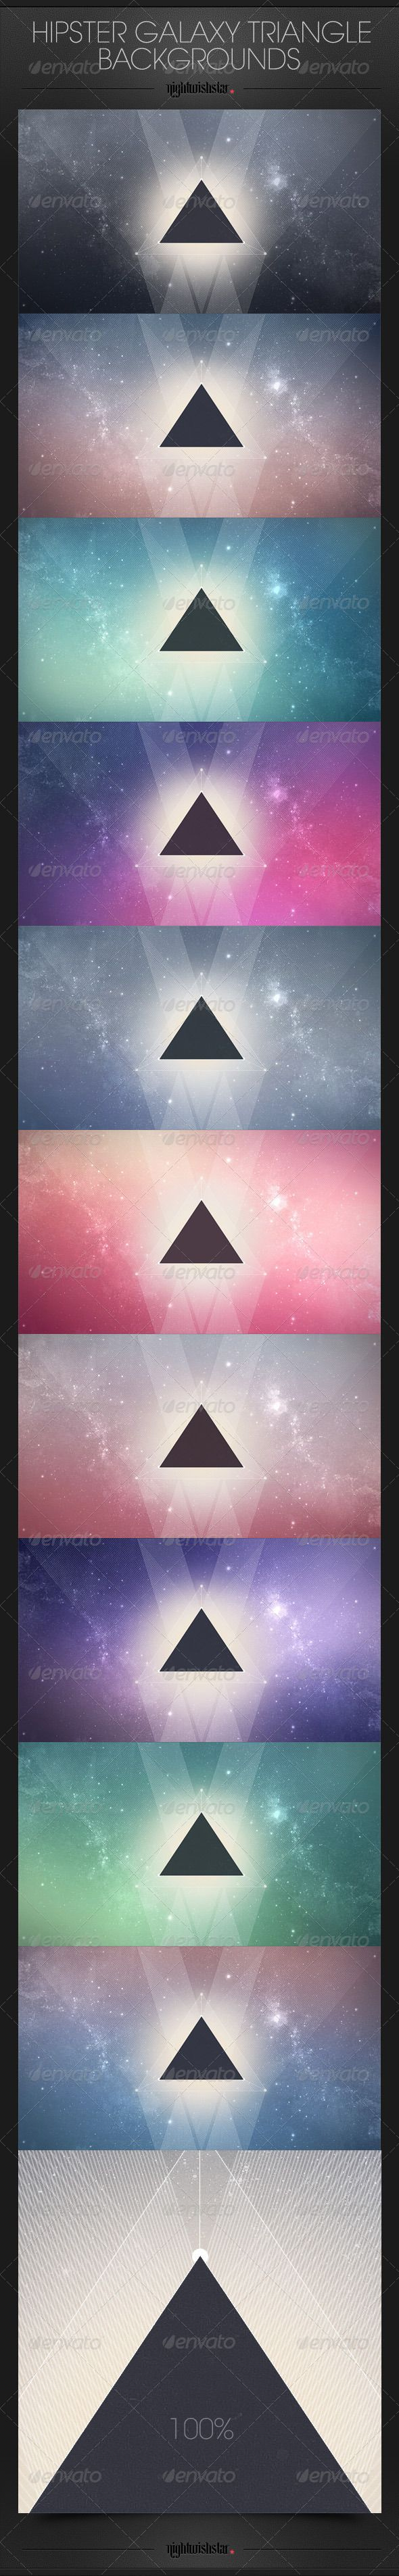 Hipster Galaxy Triangle BackgroundsHipster Backgrounds Galaxy